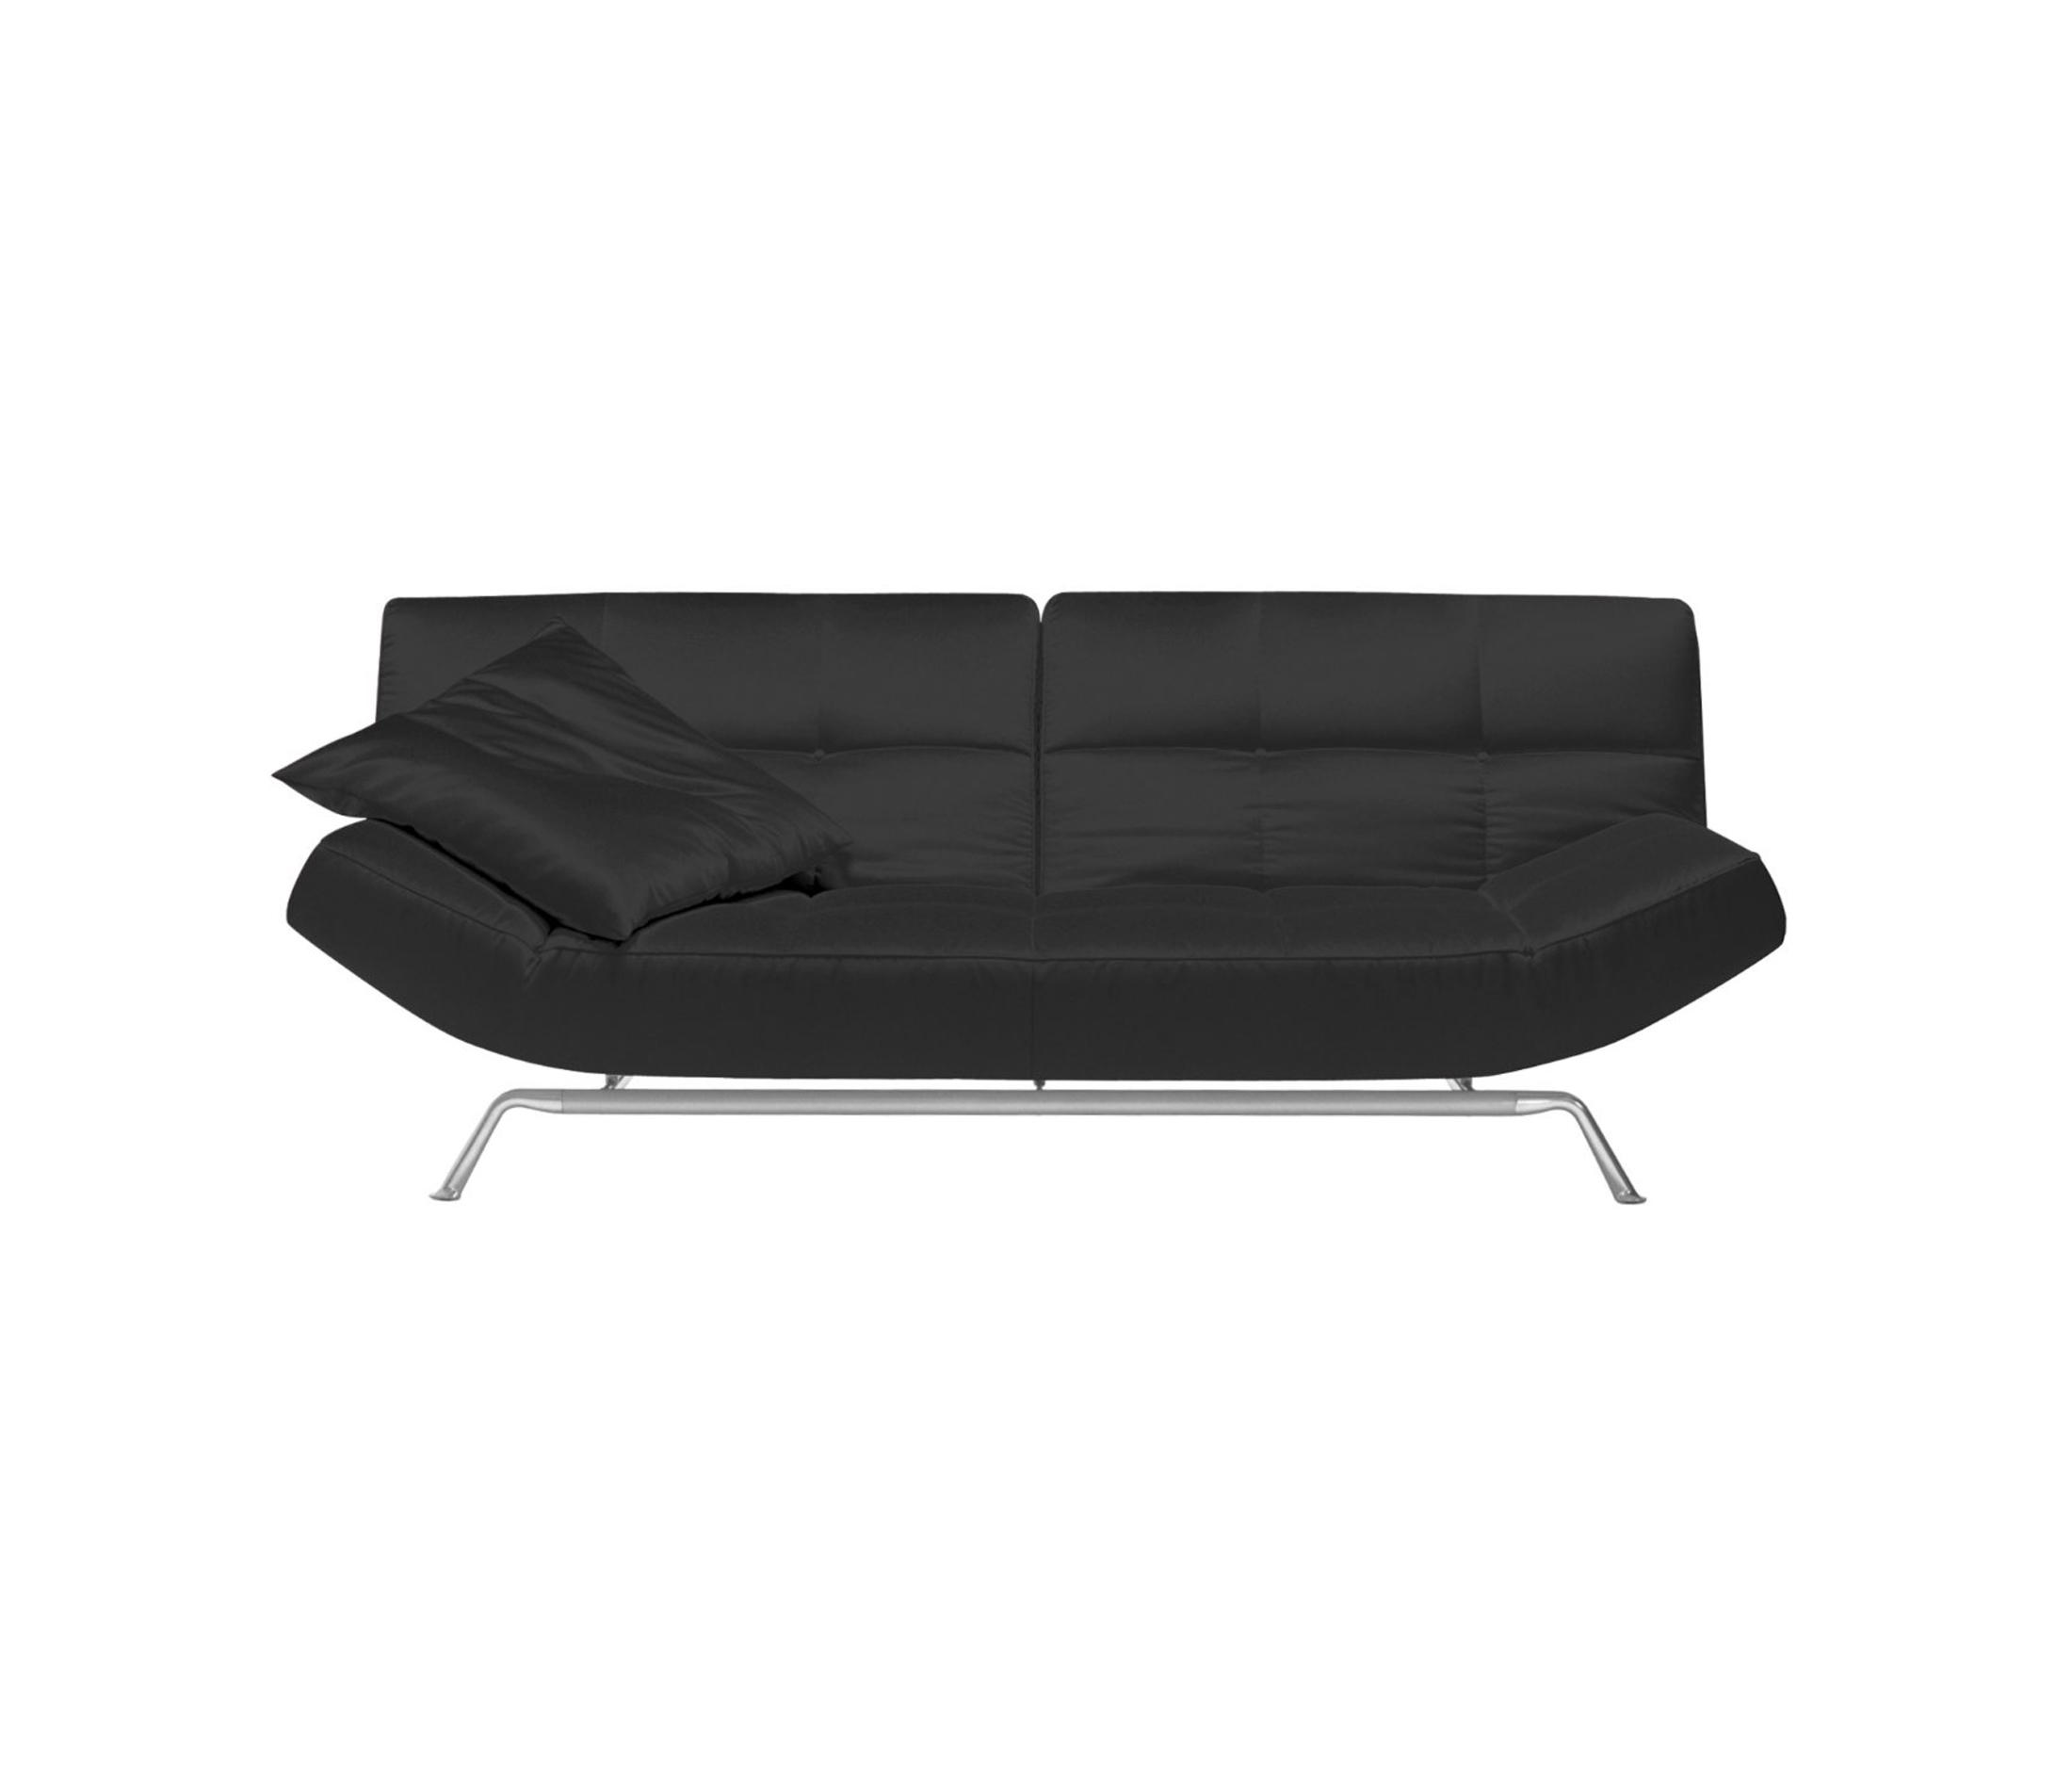 smala schlafsofas von ligne roset architonic. Black Bedroom Furniture Sets. Home Design Ideas